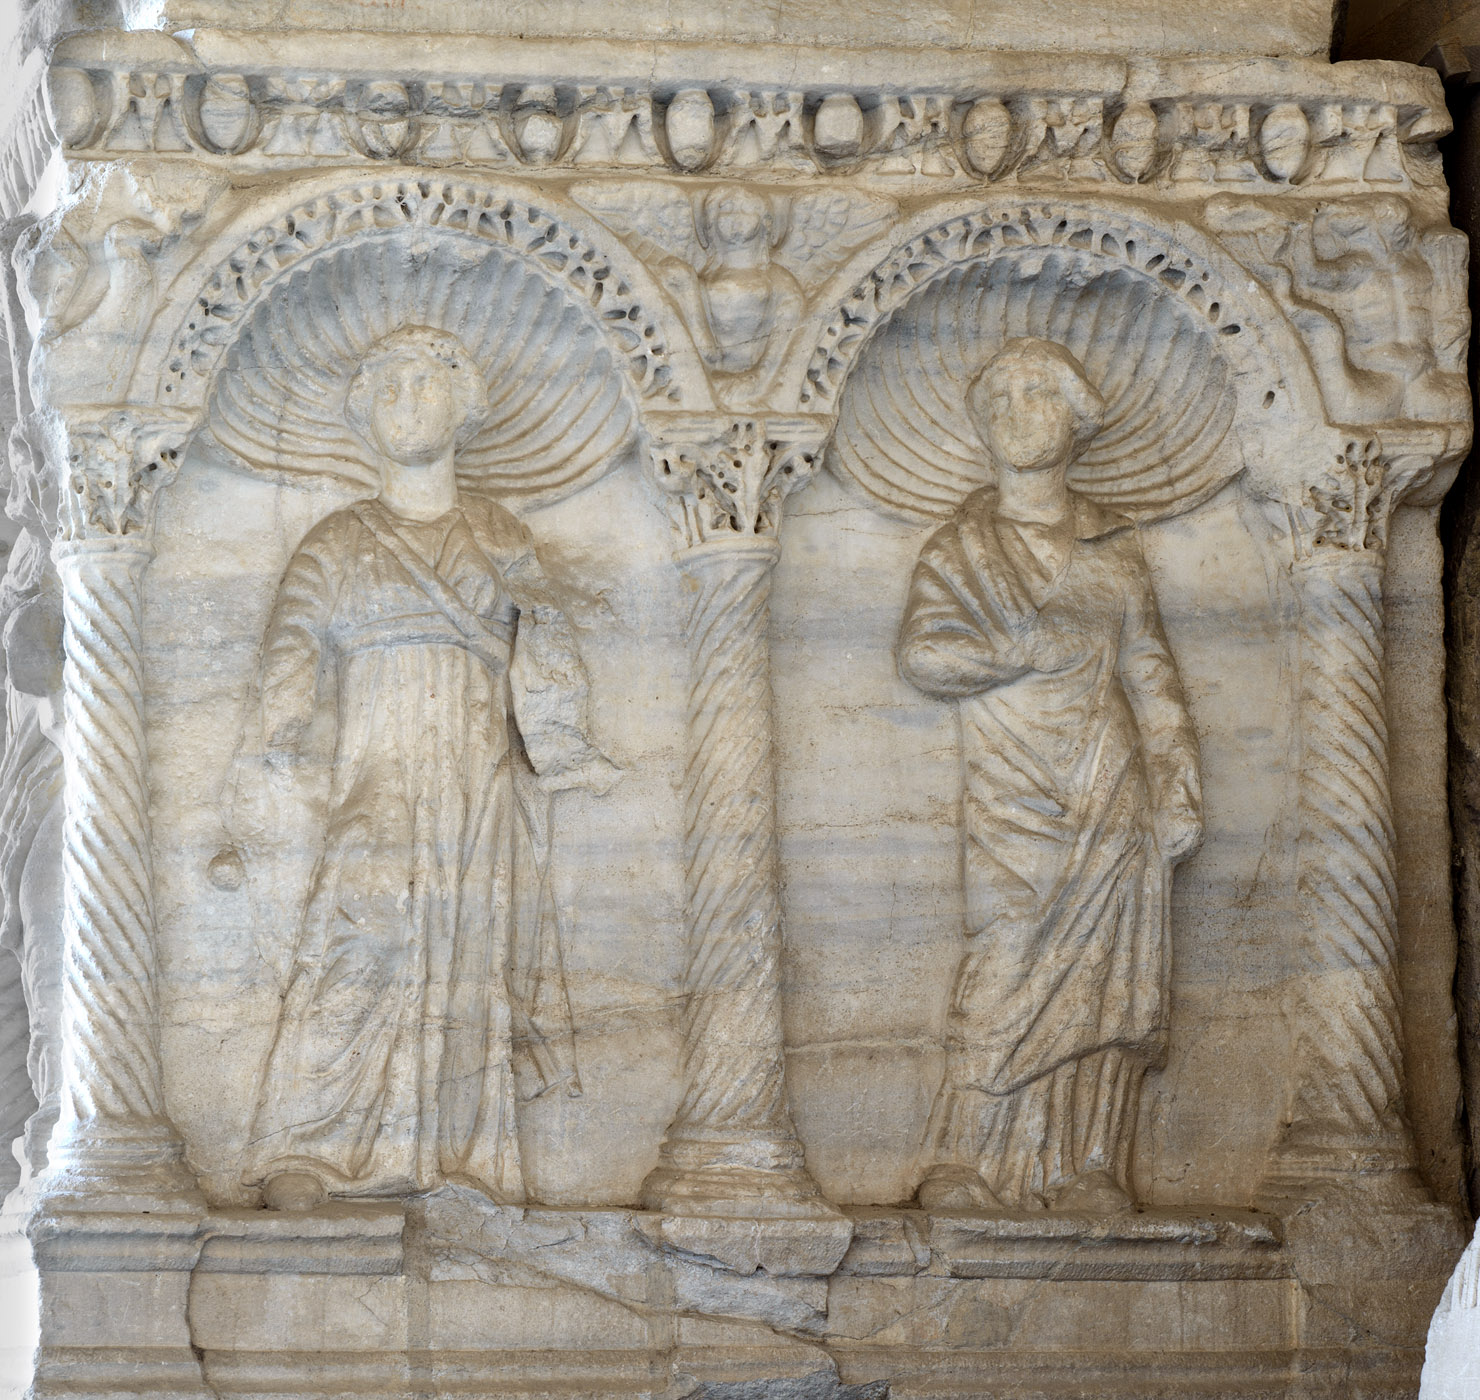 Sarcophagus with representation of the dead married couple and the Muses in arches (right short side panel). Marble. Rome. Ca. 250 CE. Inv. No. С 22 est. Pisa, Camposanto Monumentale